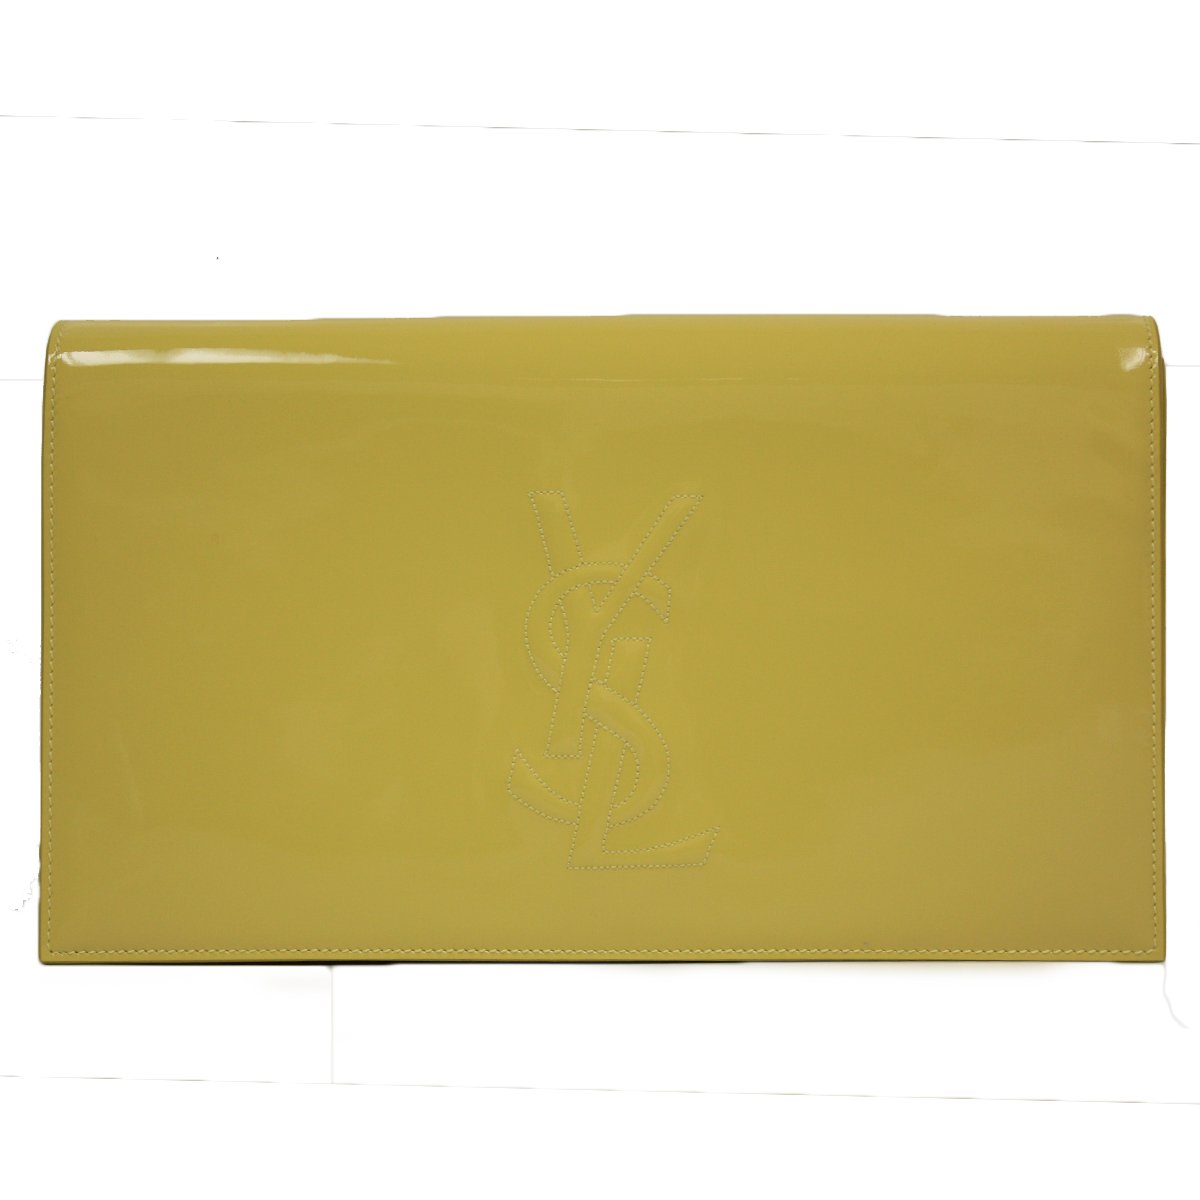 537c1128132 YSL Yves Saint Laurent Belle Du Jour Neon Yellow Patent Leather Large  Clutch Bag: Amazon.ca: Shoes & Handbags